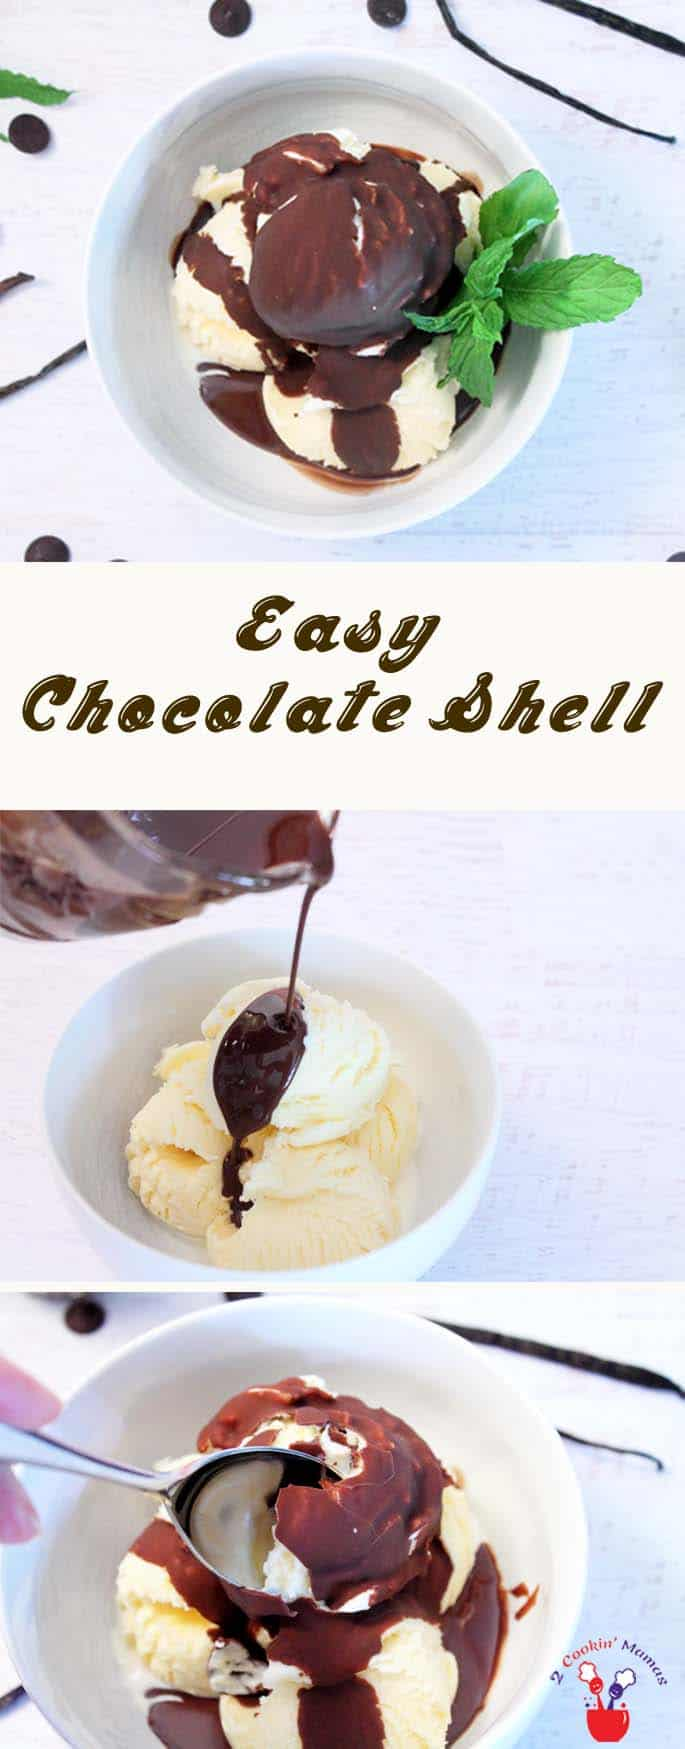 Easy Magic Chocolate Shell Ice Cream Topping | 2 Cookin Mamas Just 2 ingredients & 3 minutes and you can have that magic hard chocolate shell for your favorite ice cream. It's homemade so you know what's in it & it keeps for 2 months. #recipe #dessert